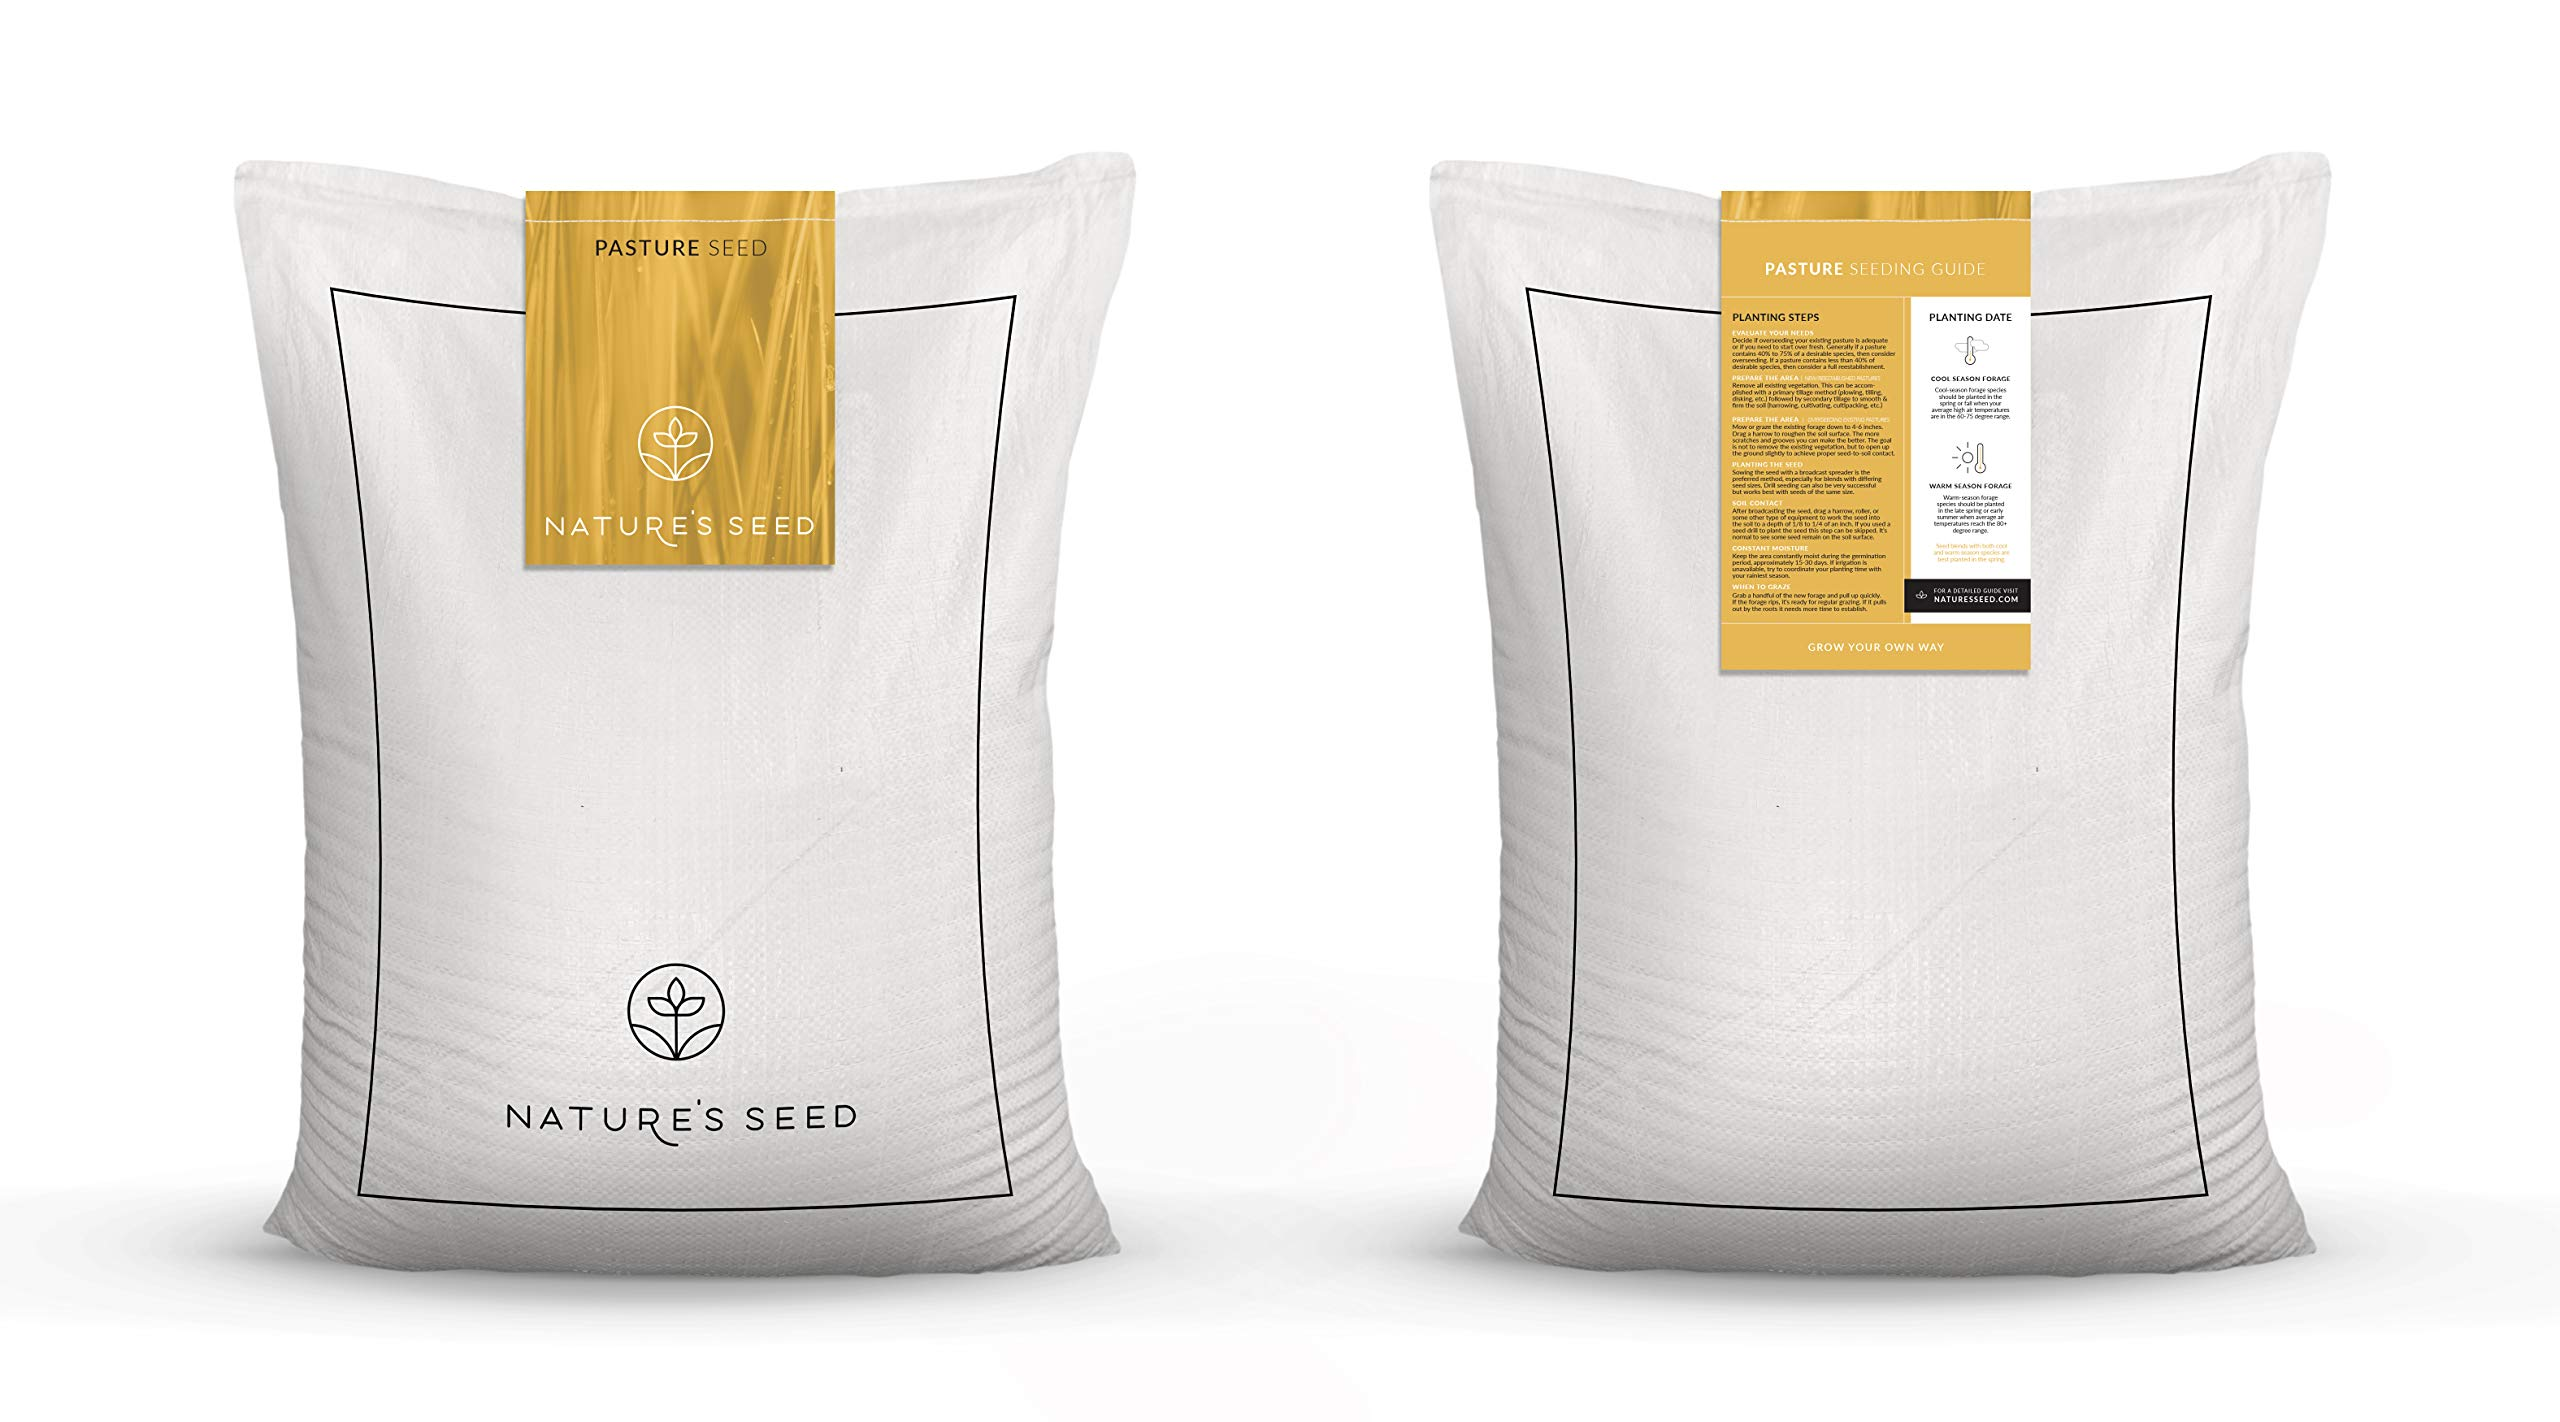 Pacific Southwest Horse Pasture Seed (2.5 Acre) by Nature's Seed